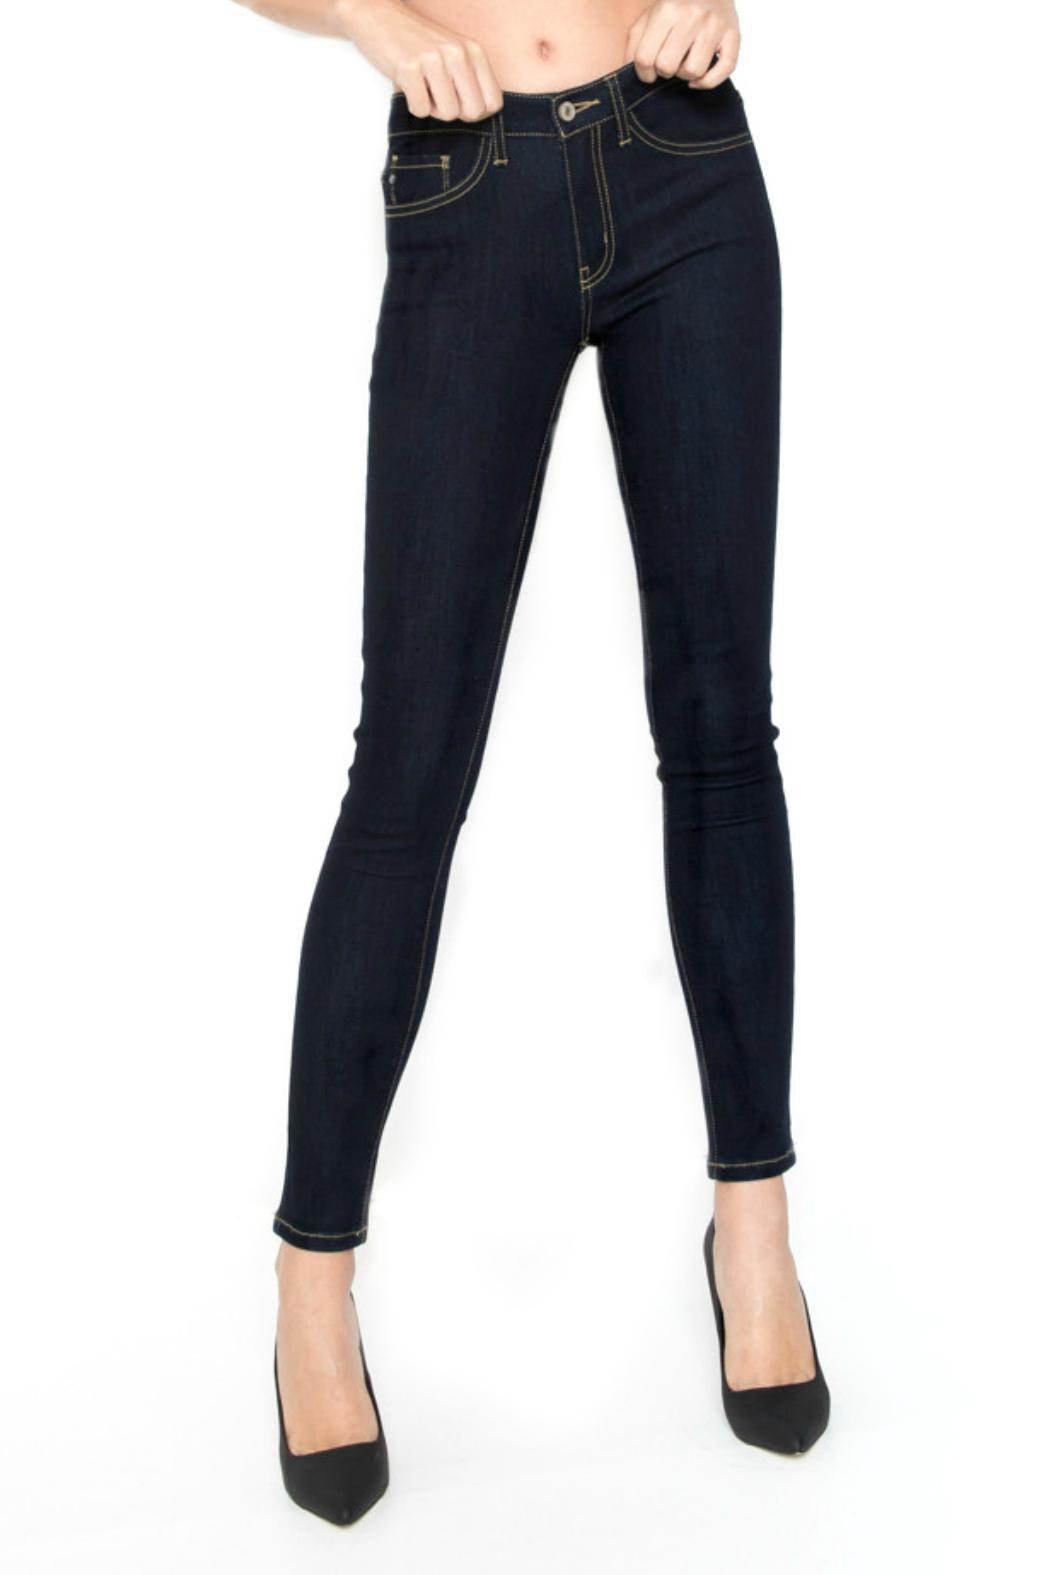 KanCan Dark Wash Jeans - Back Cropped Image